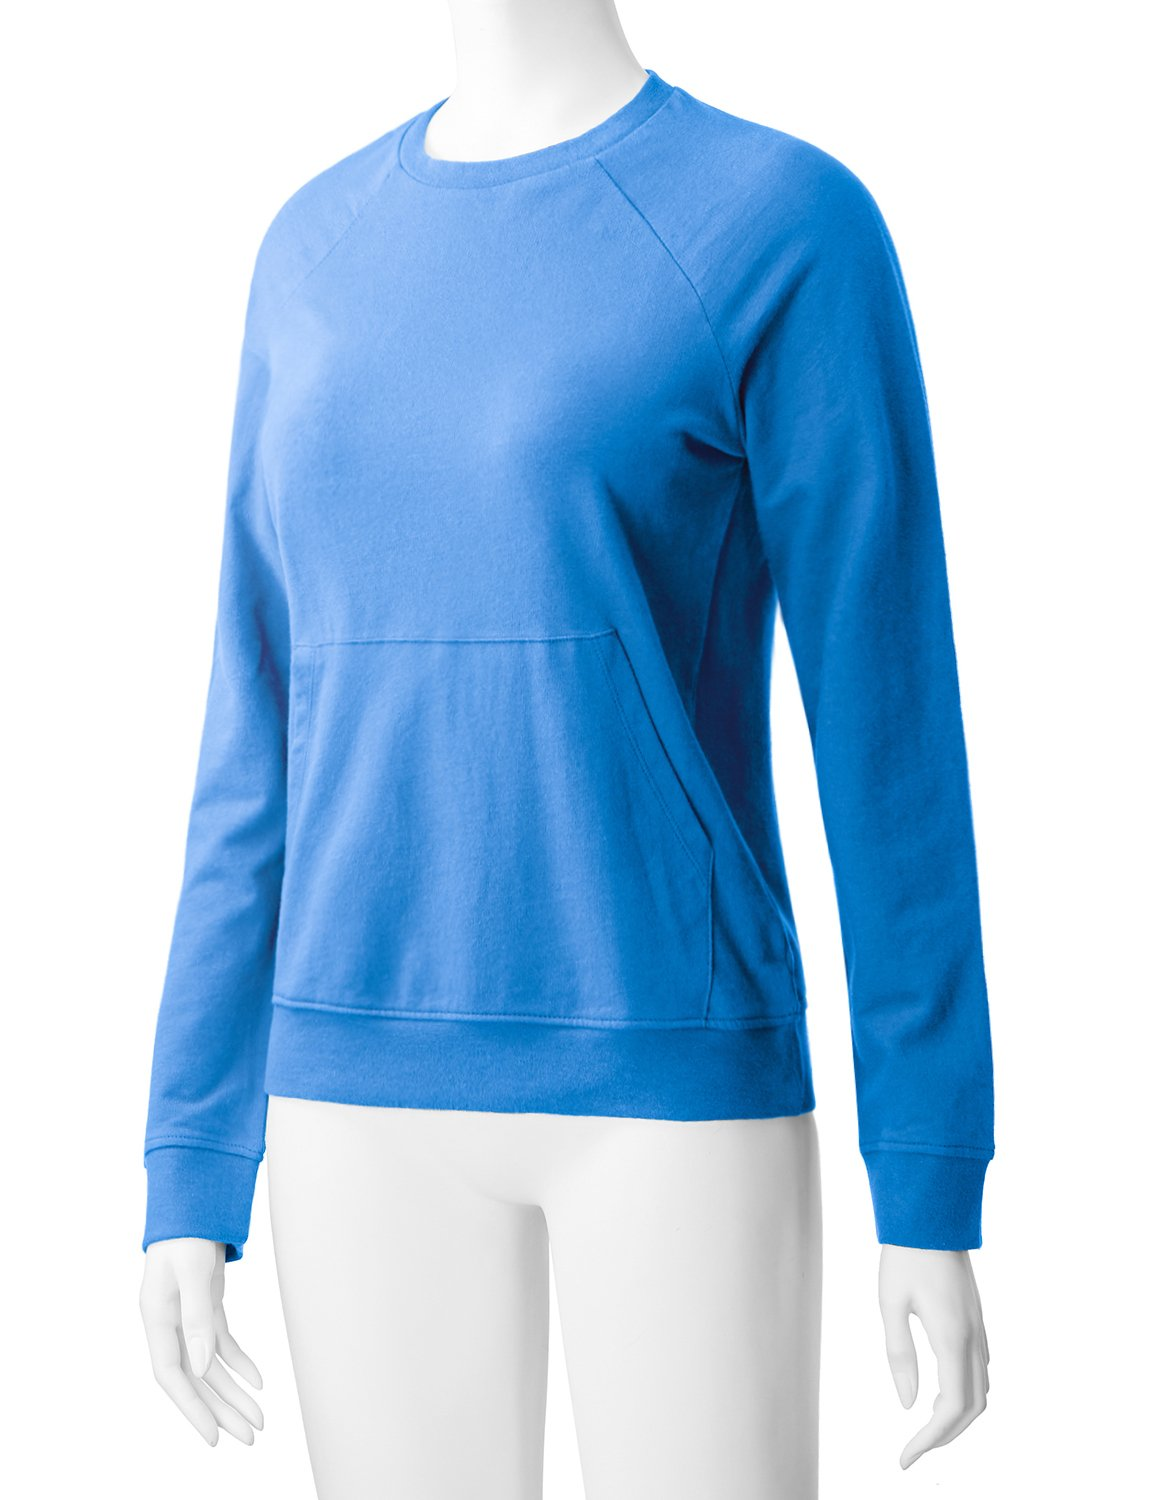 Regna X Women's Long Sleeve Crewneck Cotton Pullover Hooded Sweatshirts for Women by Regna X (Image #4)